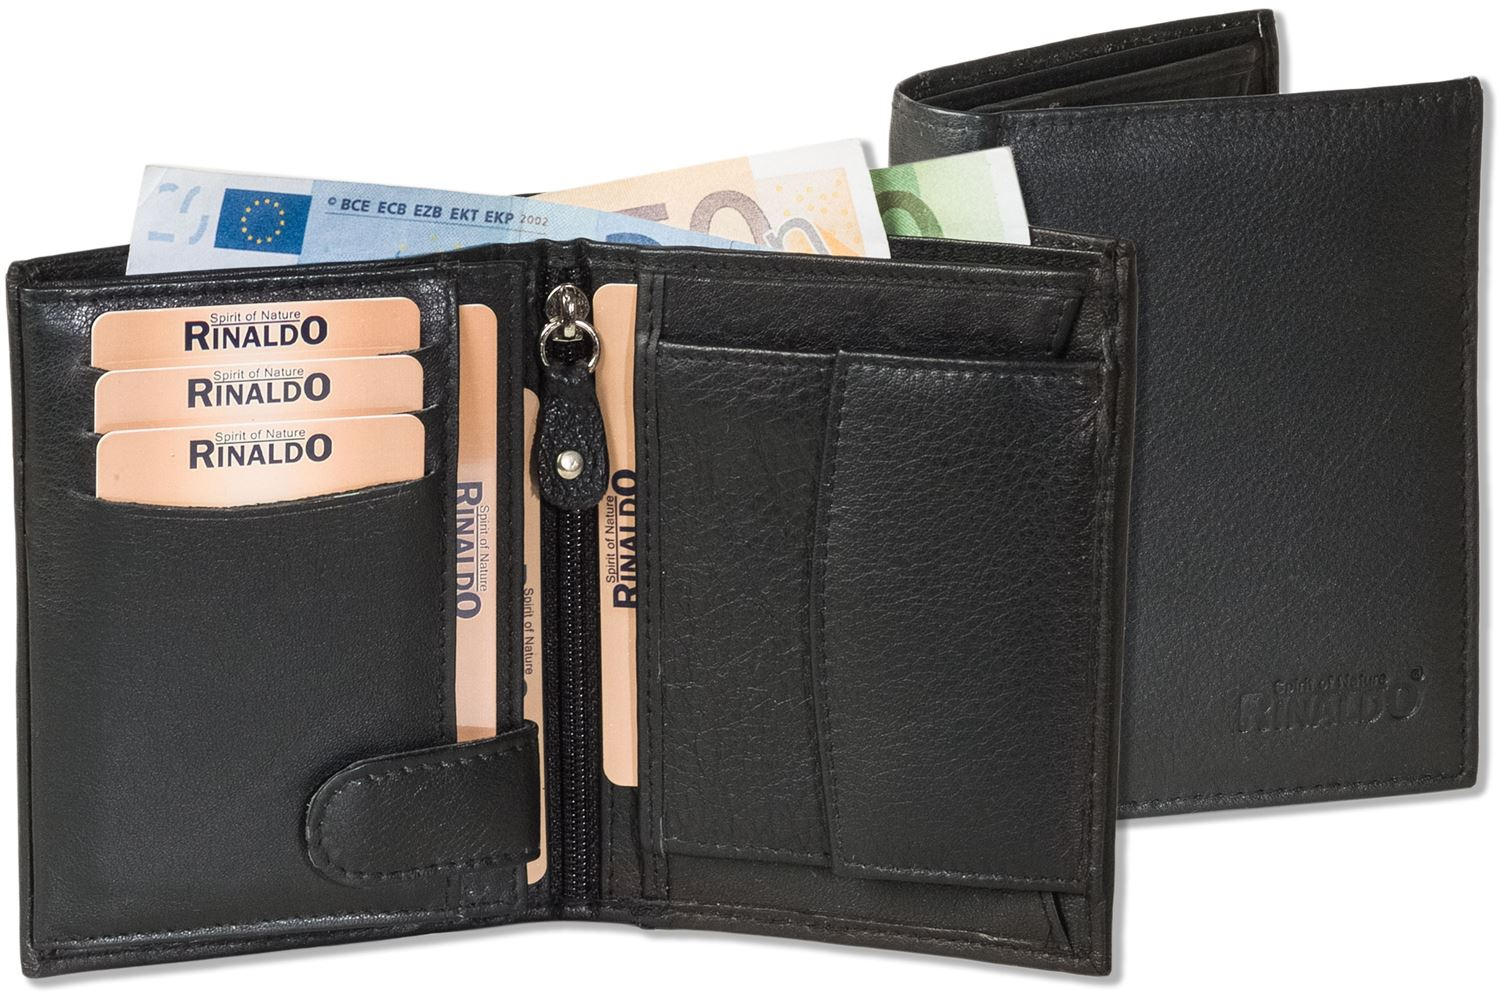 Rinaldo Leather Purse in Black with outside bar and Leather IN